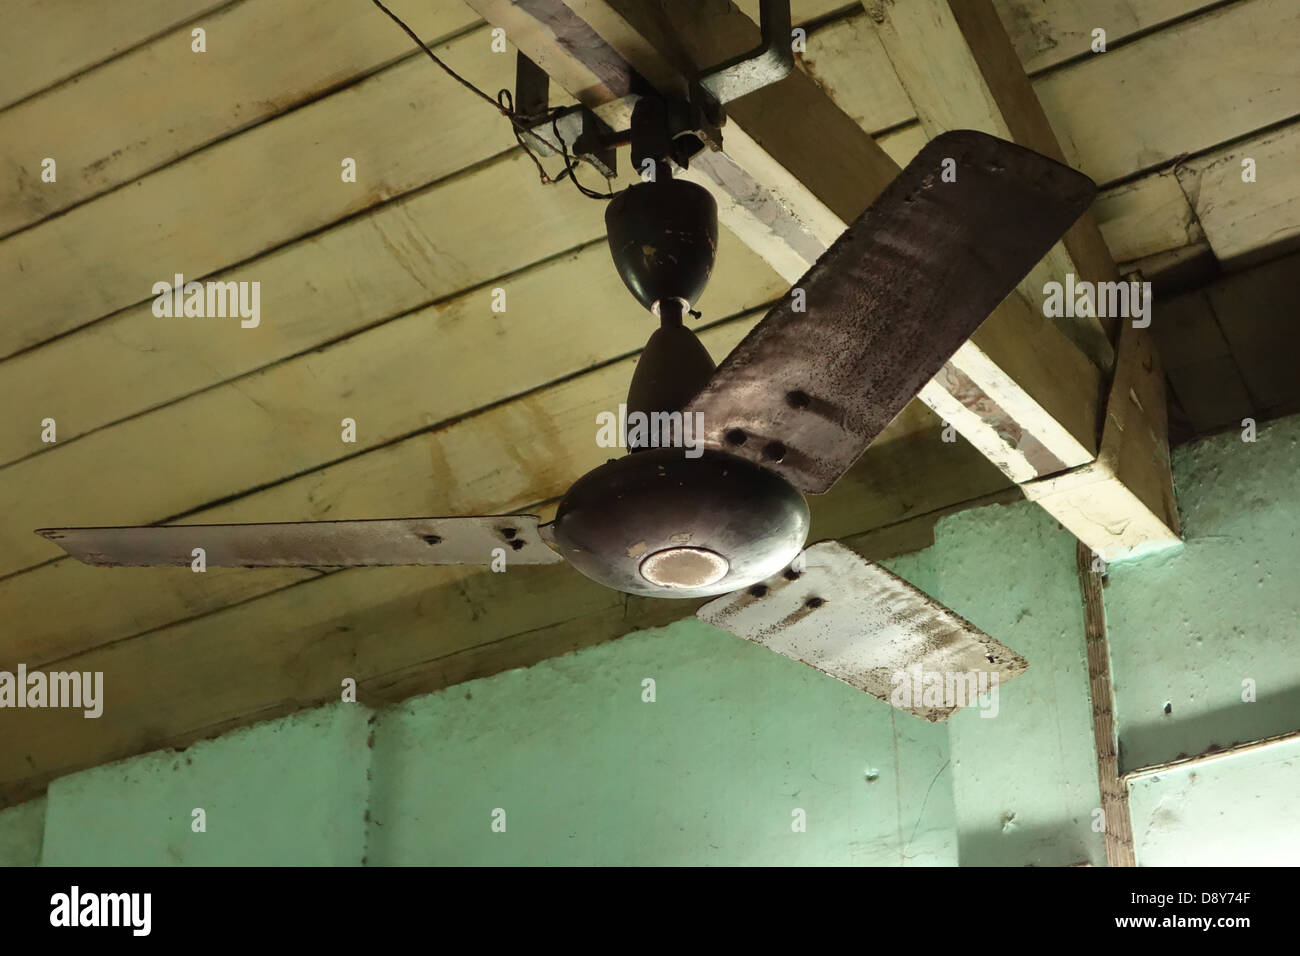 Old Ceiling Fan Mounted On Rafters   Stock Image